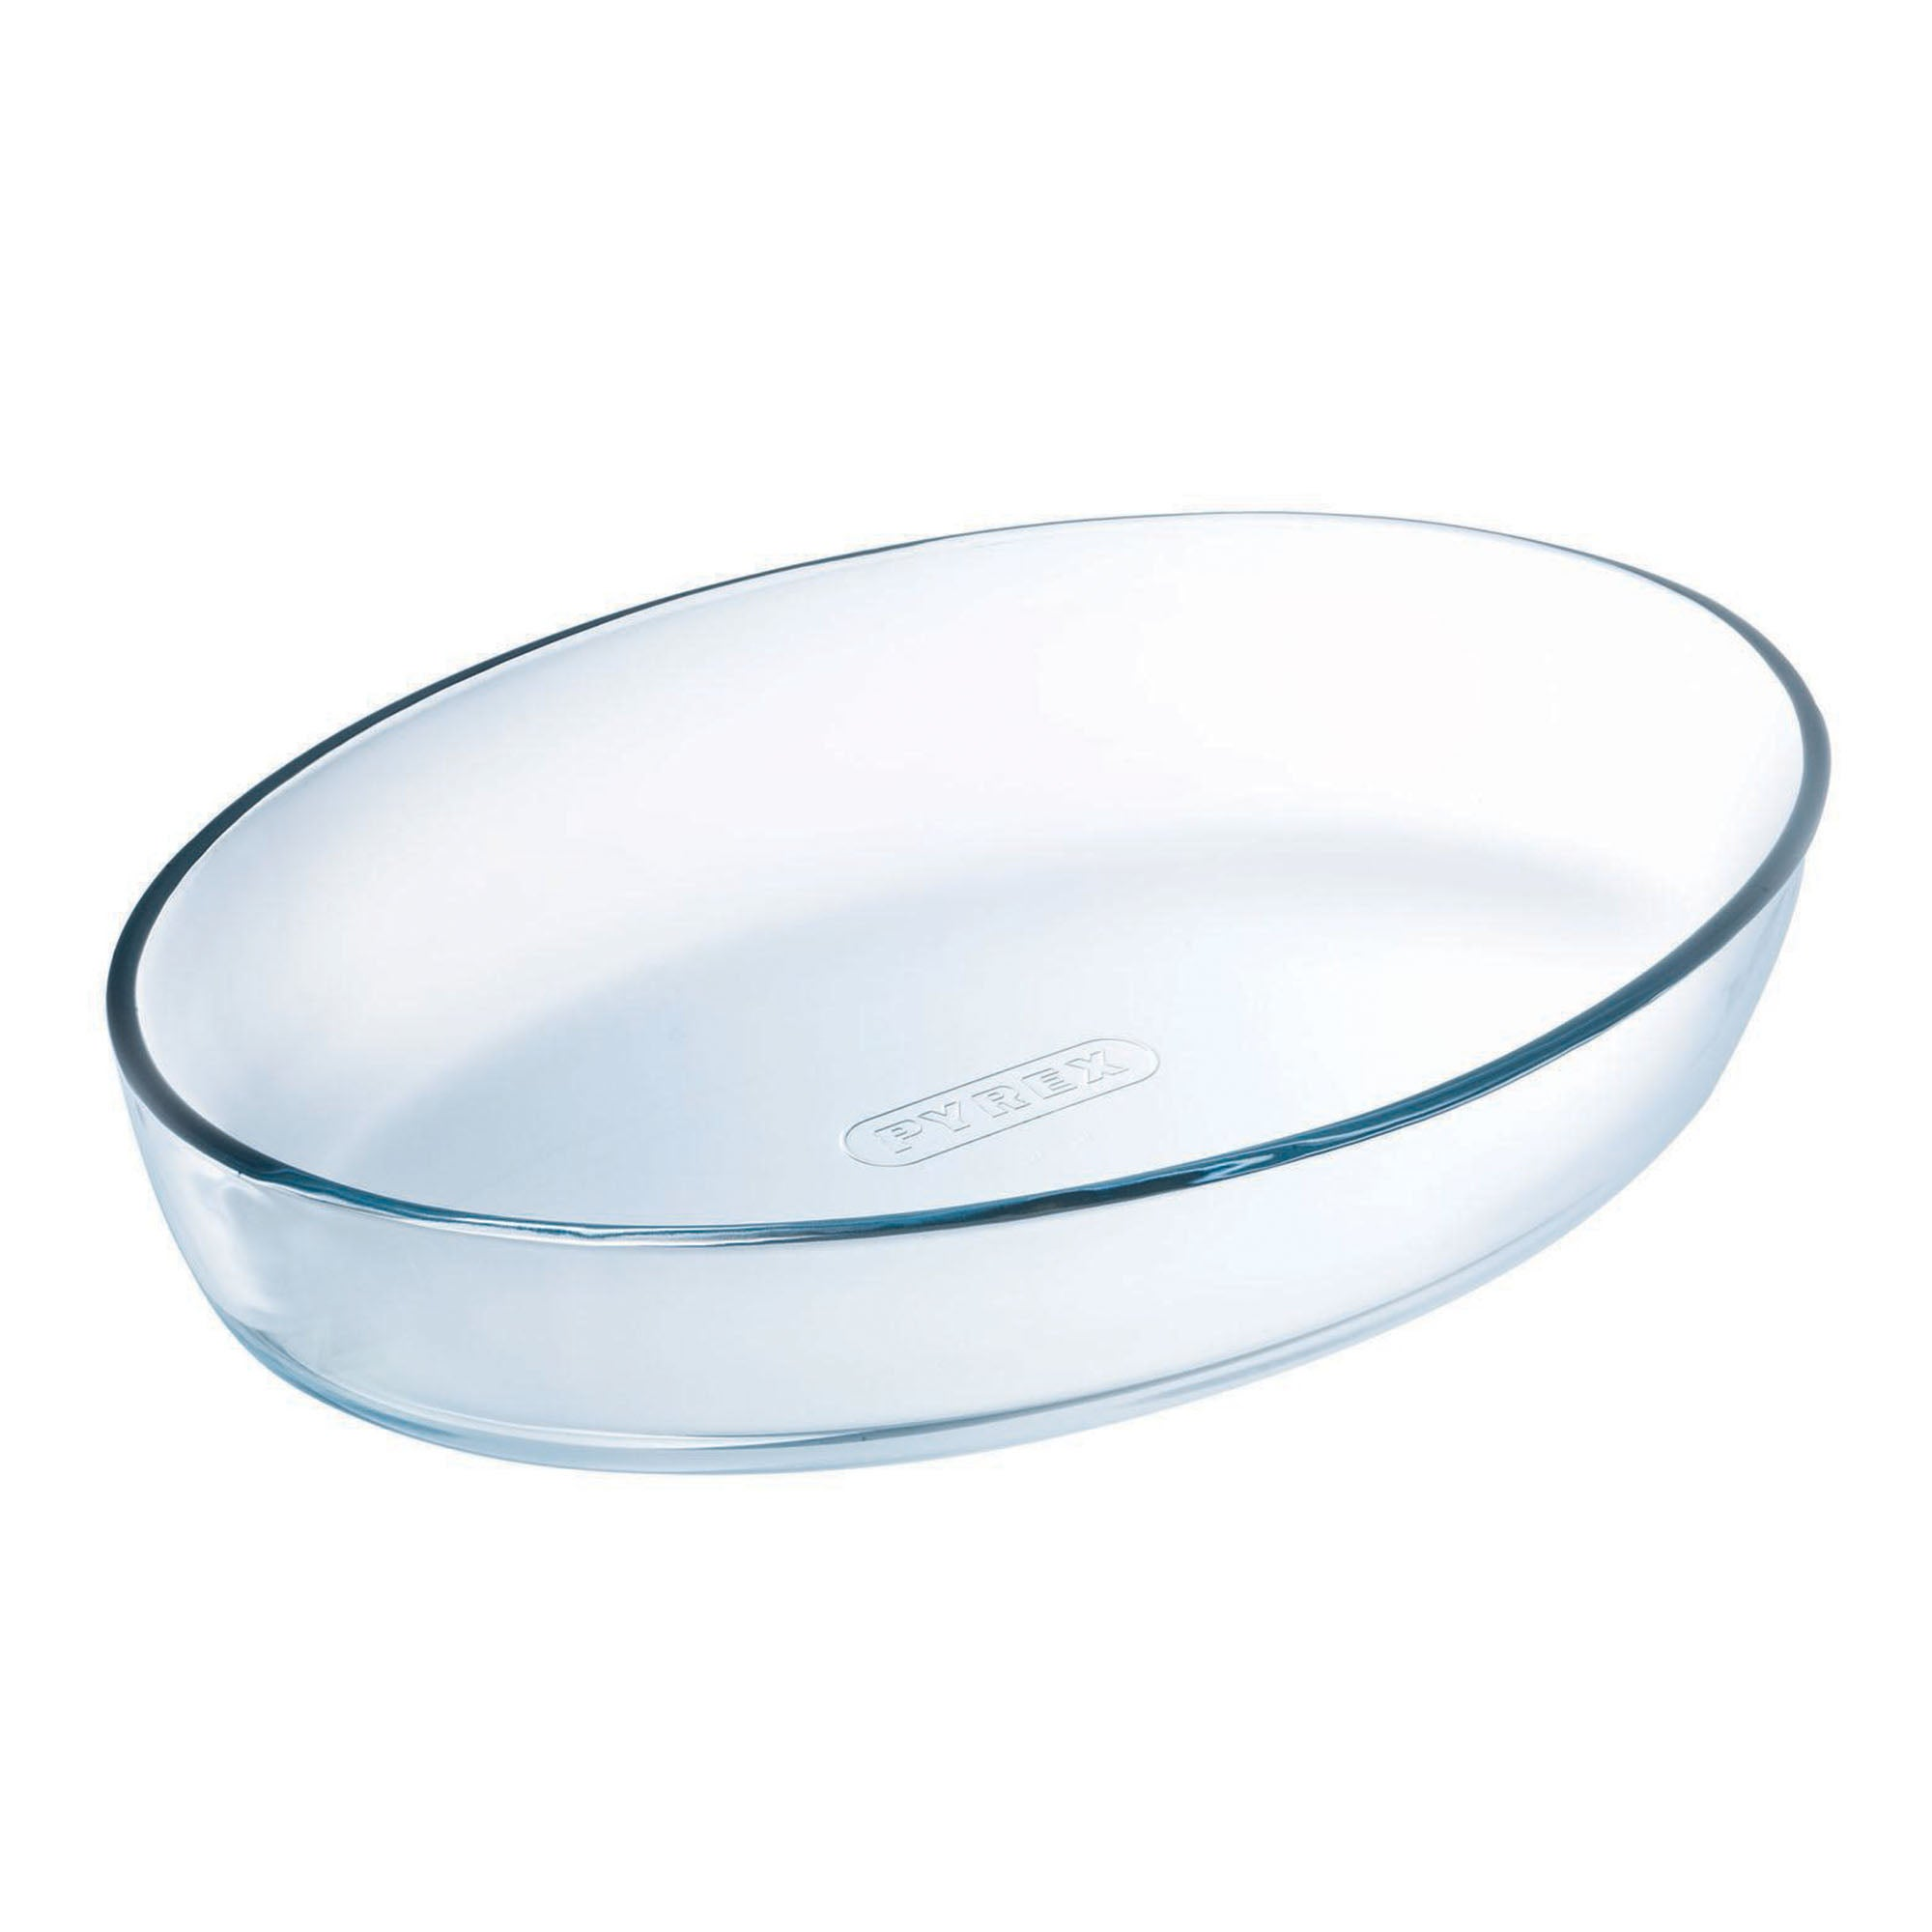 Pyrex Multi Purpose Oval Roaster